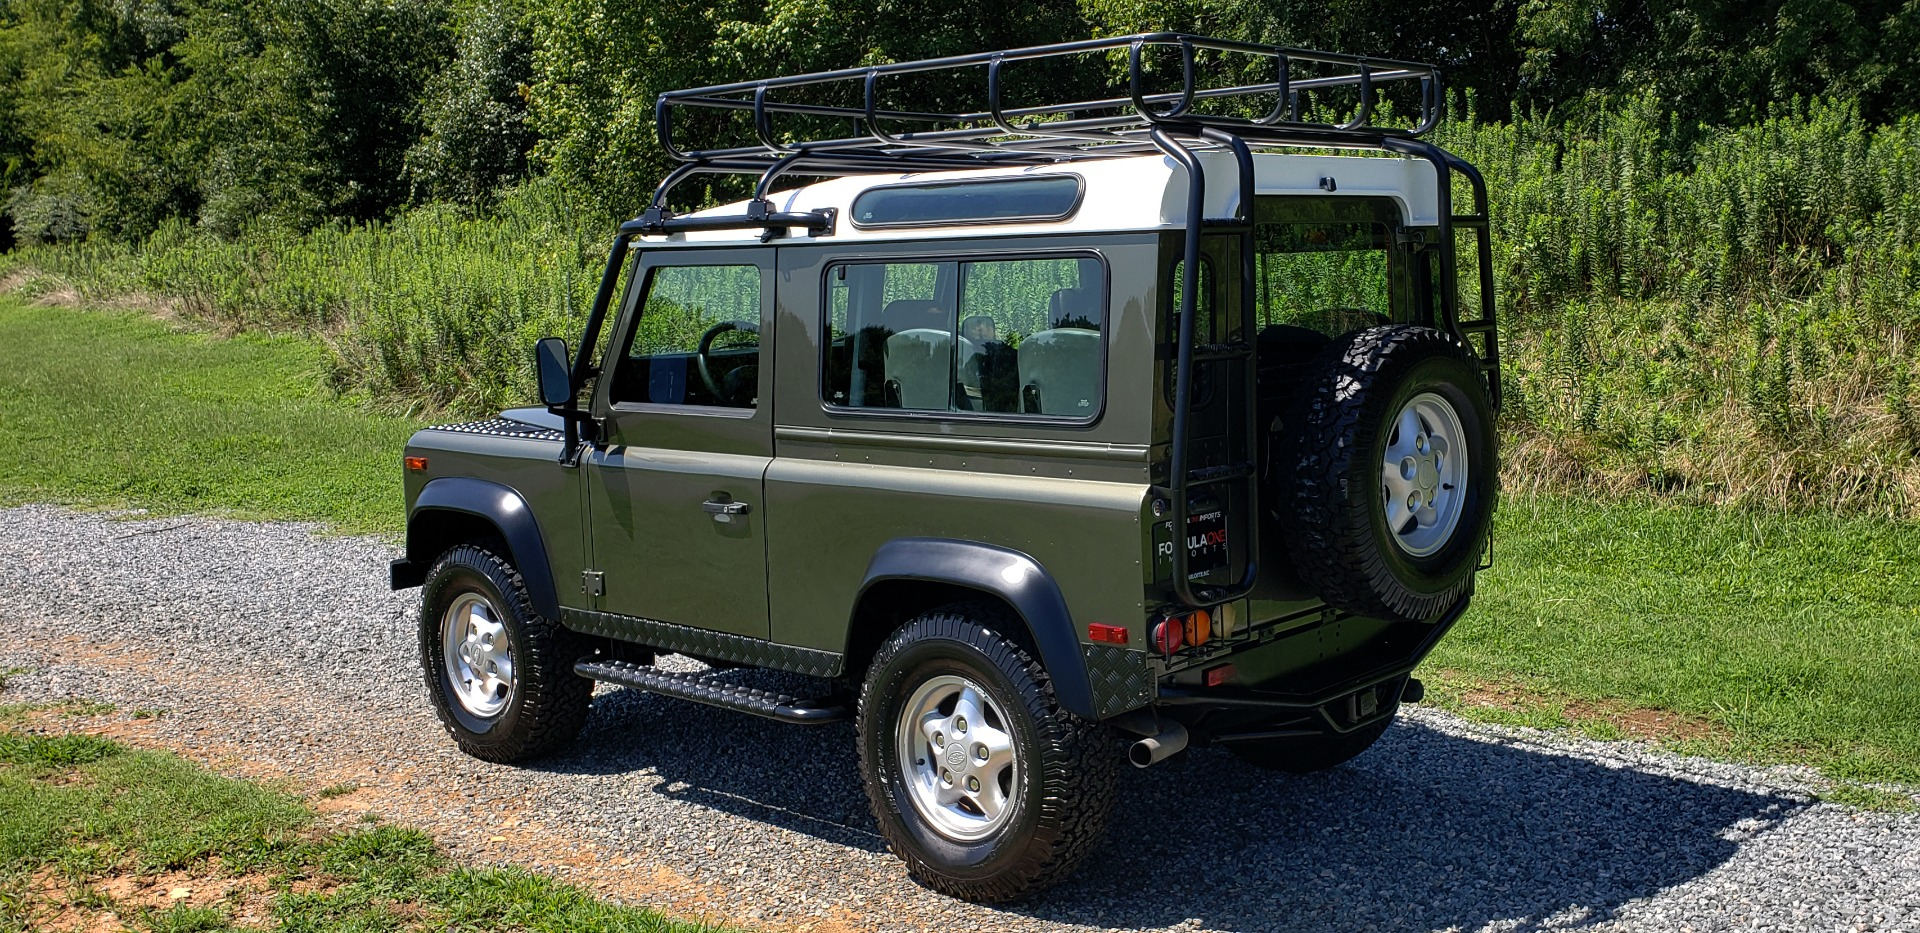 Used 1997 Land Rover DEFENDER 90 LIMITED EDITION / HARD-TOP / 4WD / FULLY RESTORED / LOW MILES for sale $119,000 at Formula Imports in Charlotte NC 28227 4